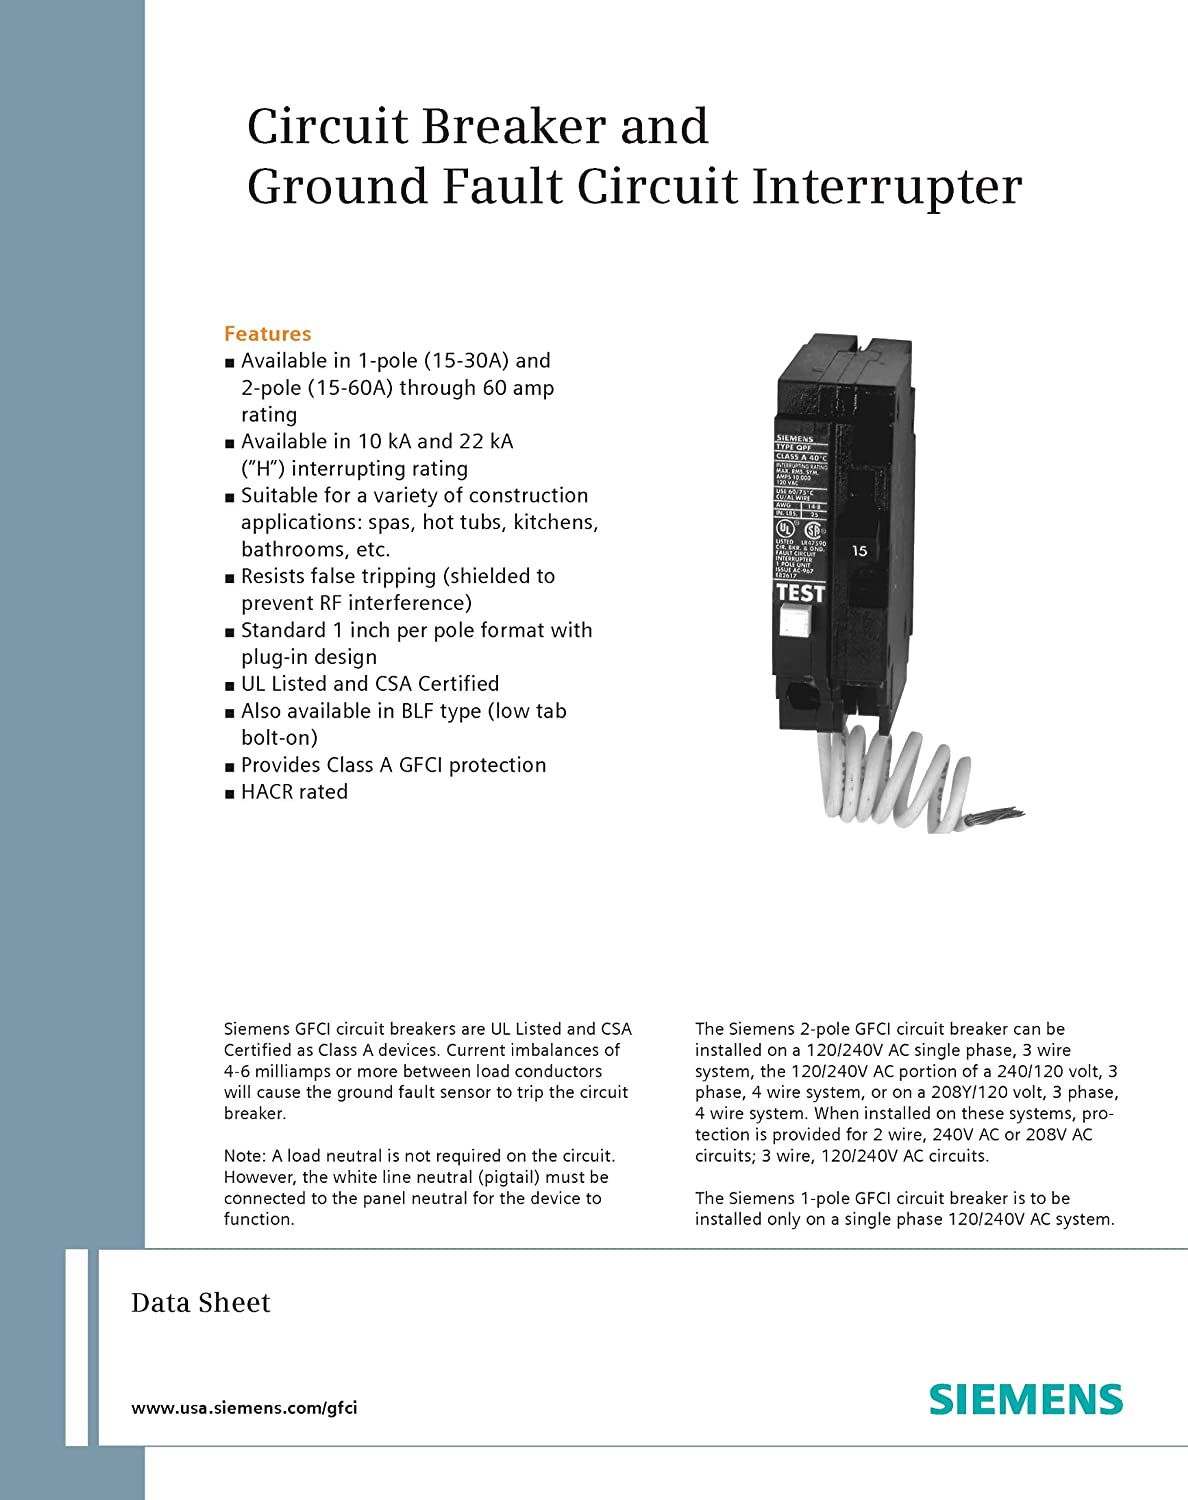 81CNoPv8enL._SL1500_ siemens qf220 20 amp 2 pole 240 volt ground fault circuit 240 volt gfci breaker wiring diagram at aneh.co